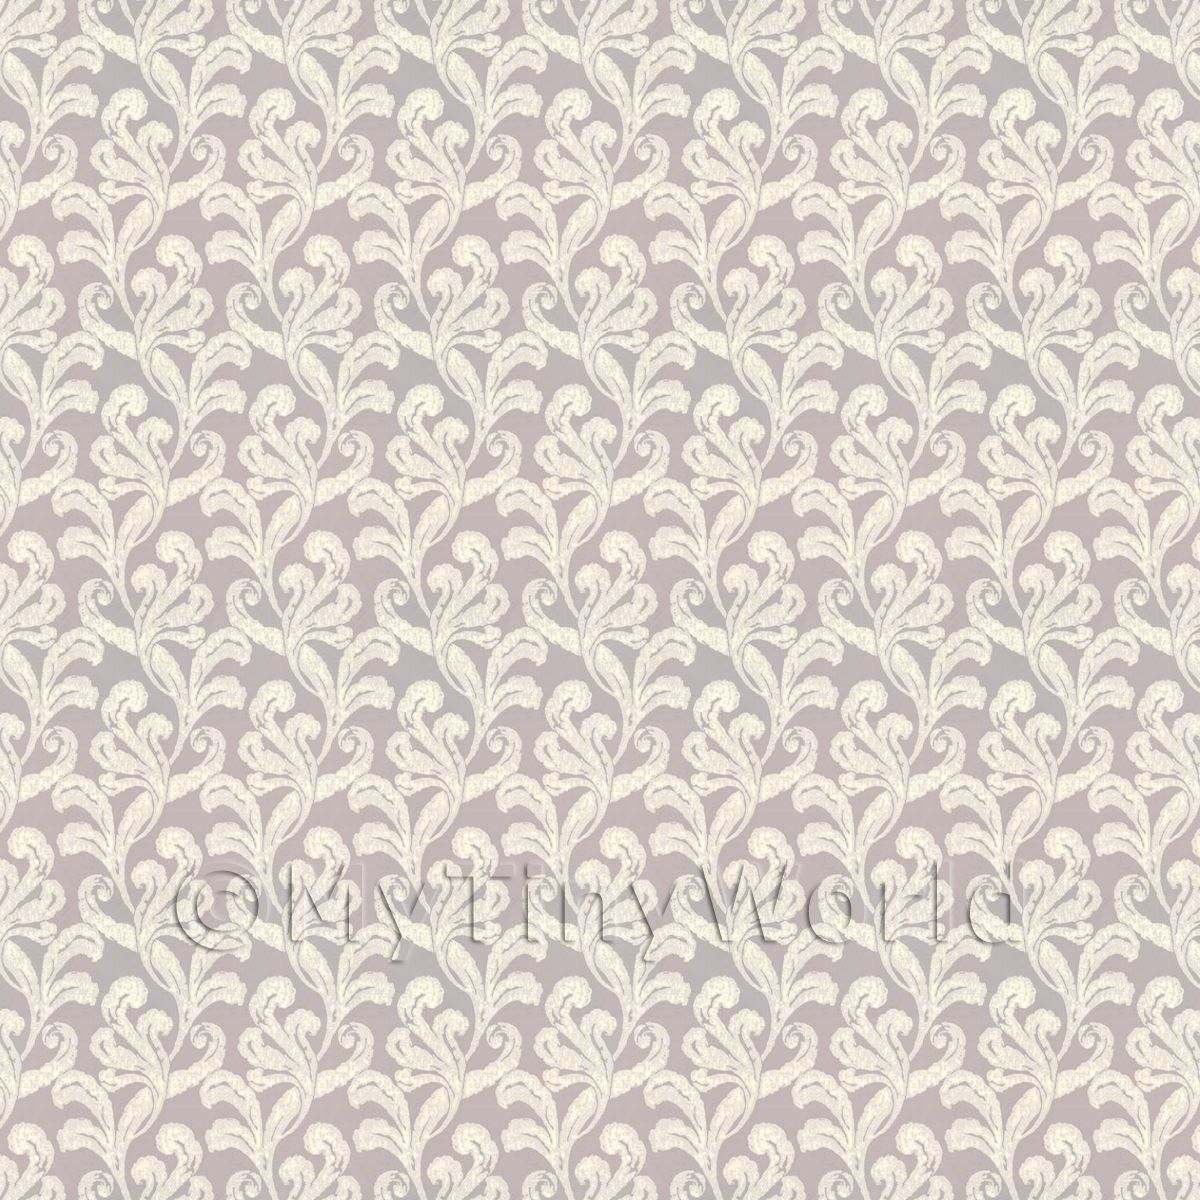 Dolls House Miniature Classic Beige Furled Leaf Wallpaper